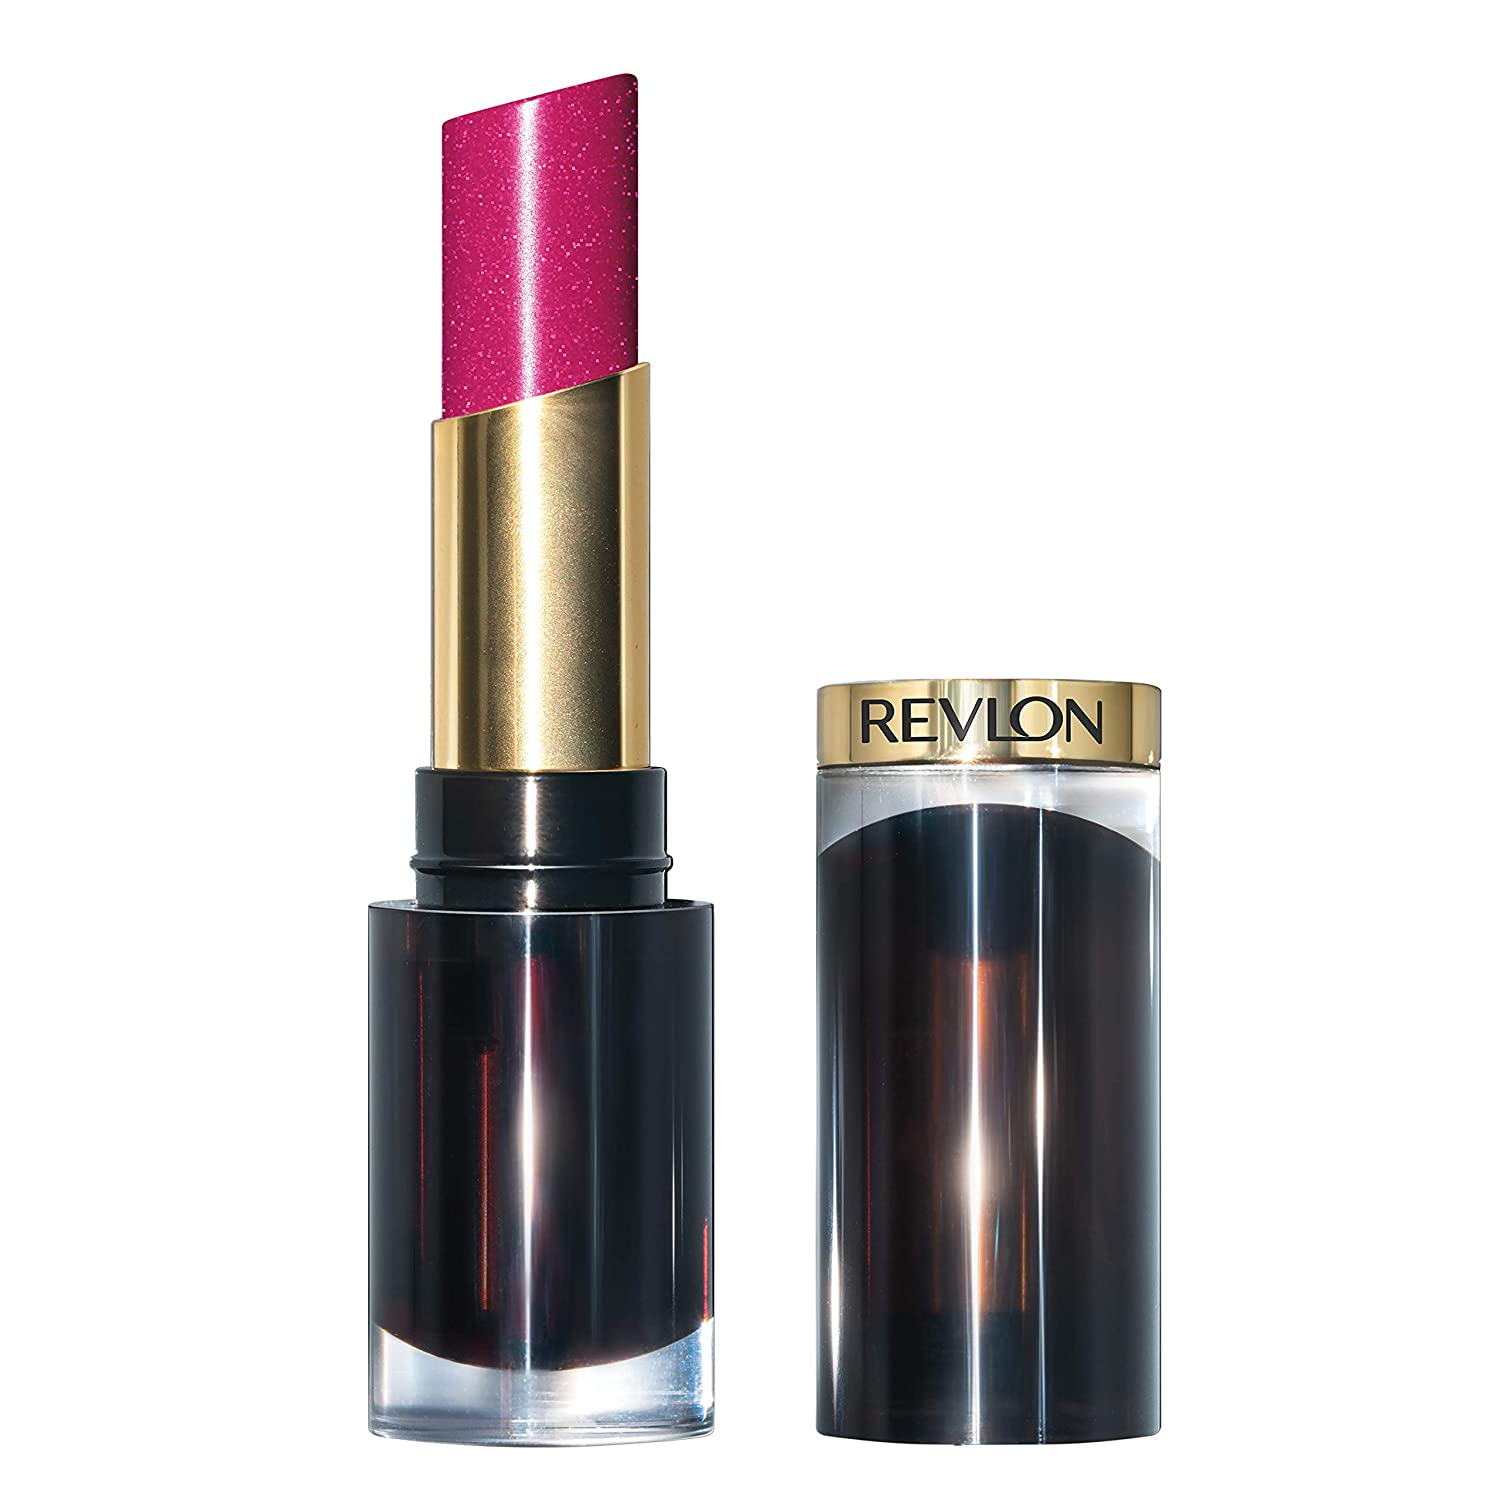 Revlon Super Lustrous Glass Shine Lipstick, Moisturizing Lipstick with Aloe and Rose Quartz in Pink, 004 Cherries in the Snow, 0.15 oz